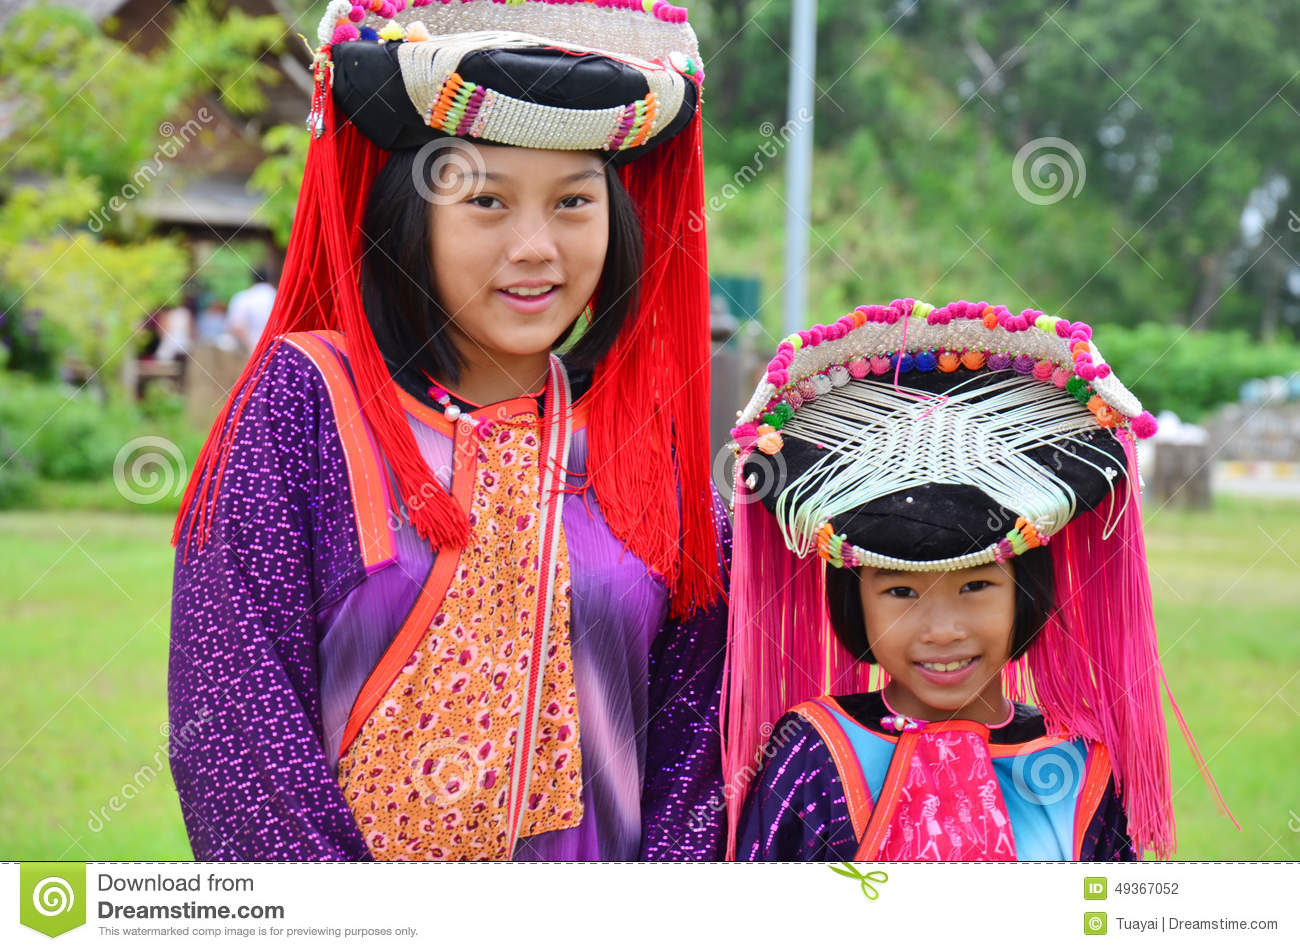 Children Hmong People waiting service the traveler for take photo with them